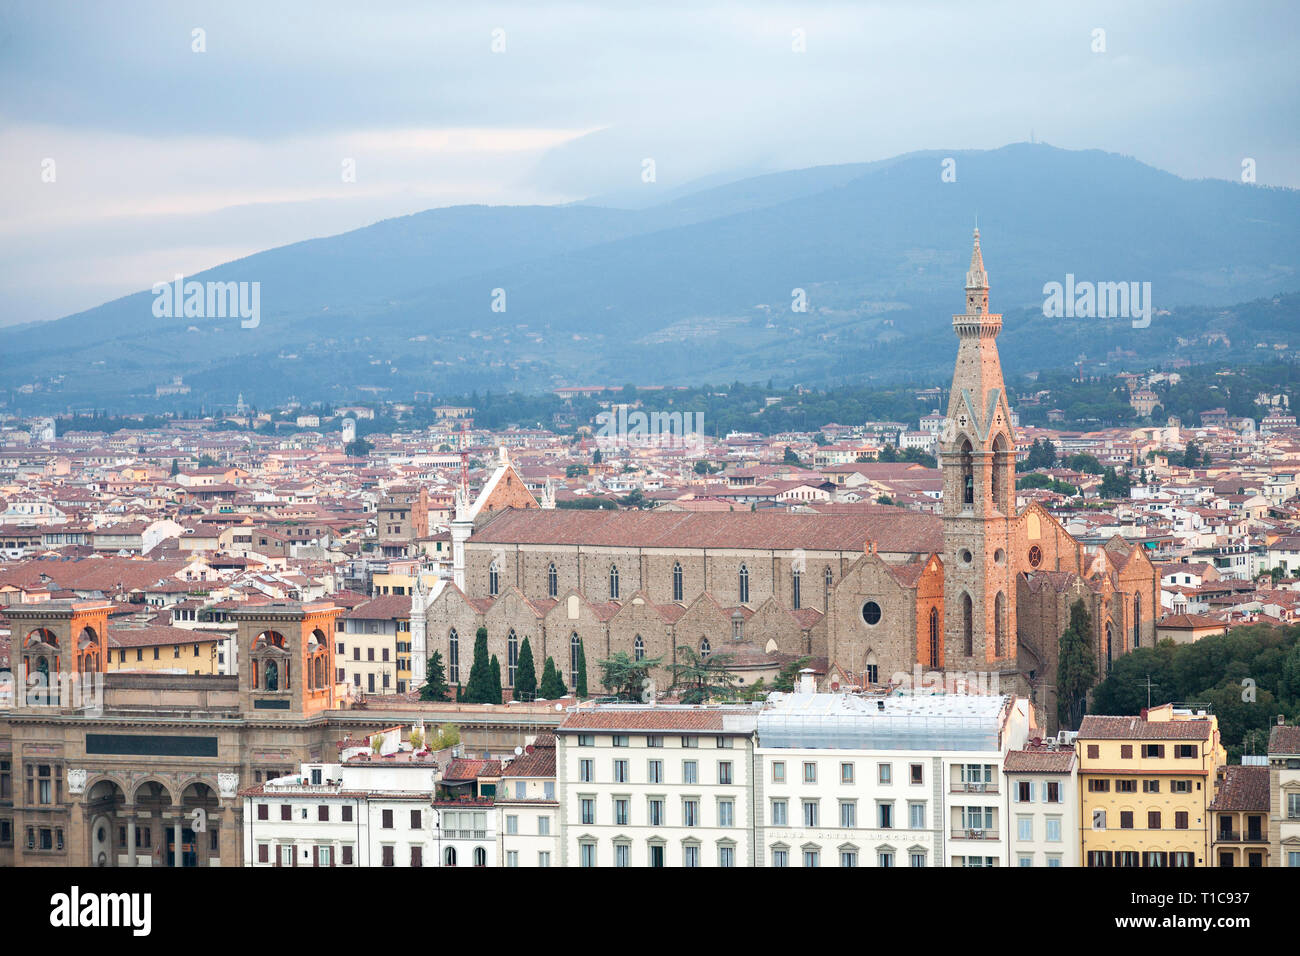 Elevated view over Florence towards the Basilica of Santa Croce at dusk. - Stock Image